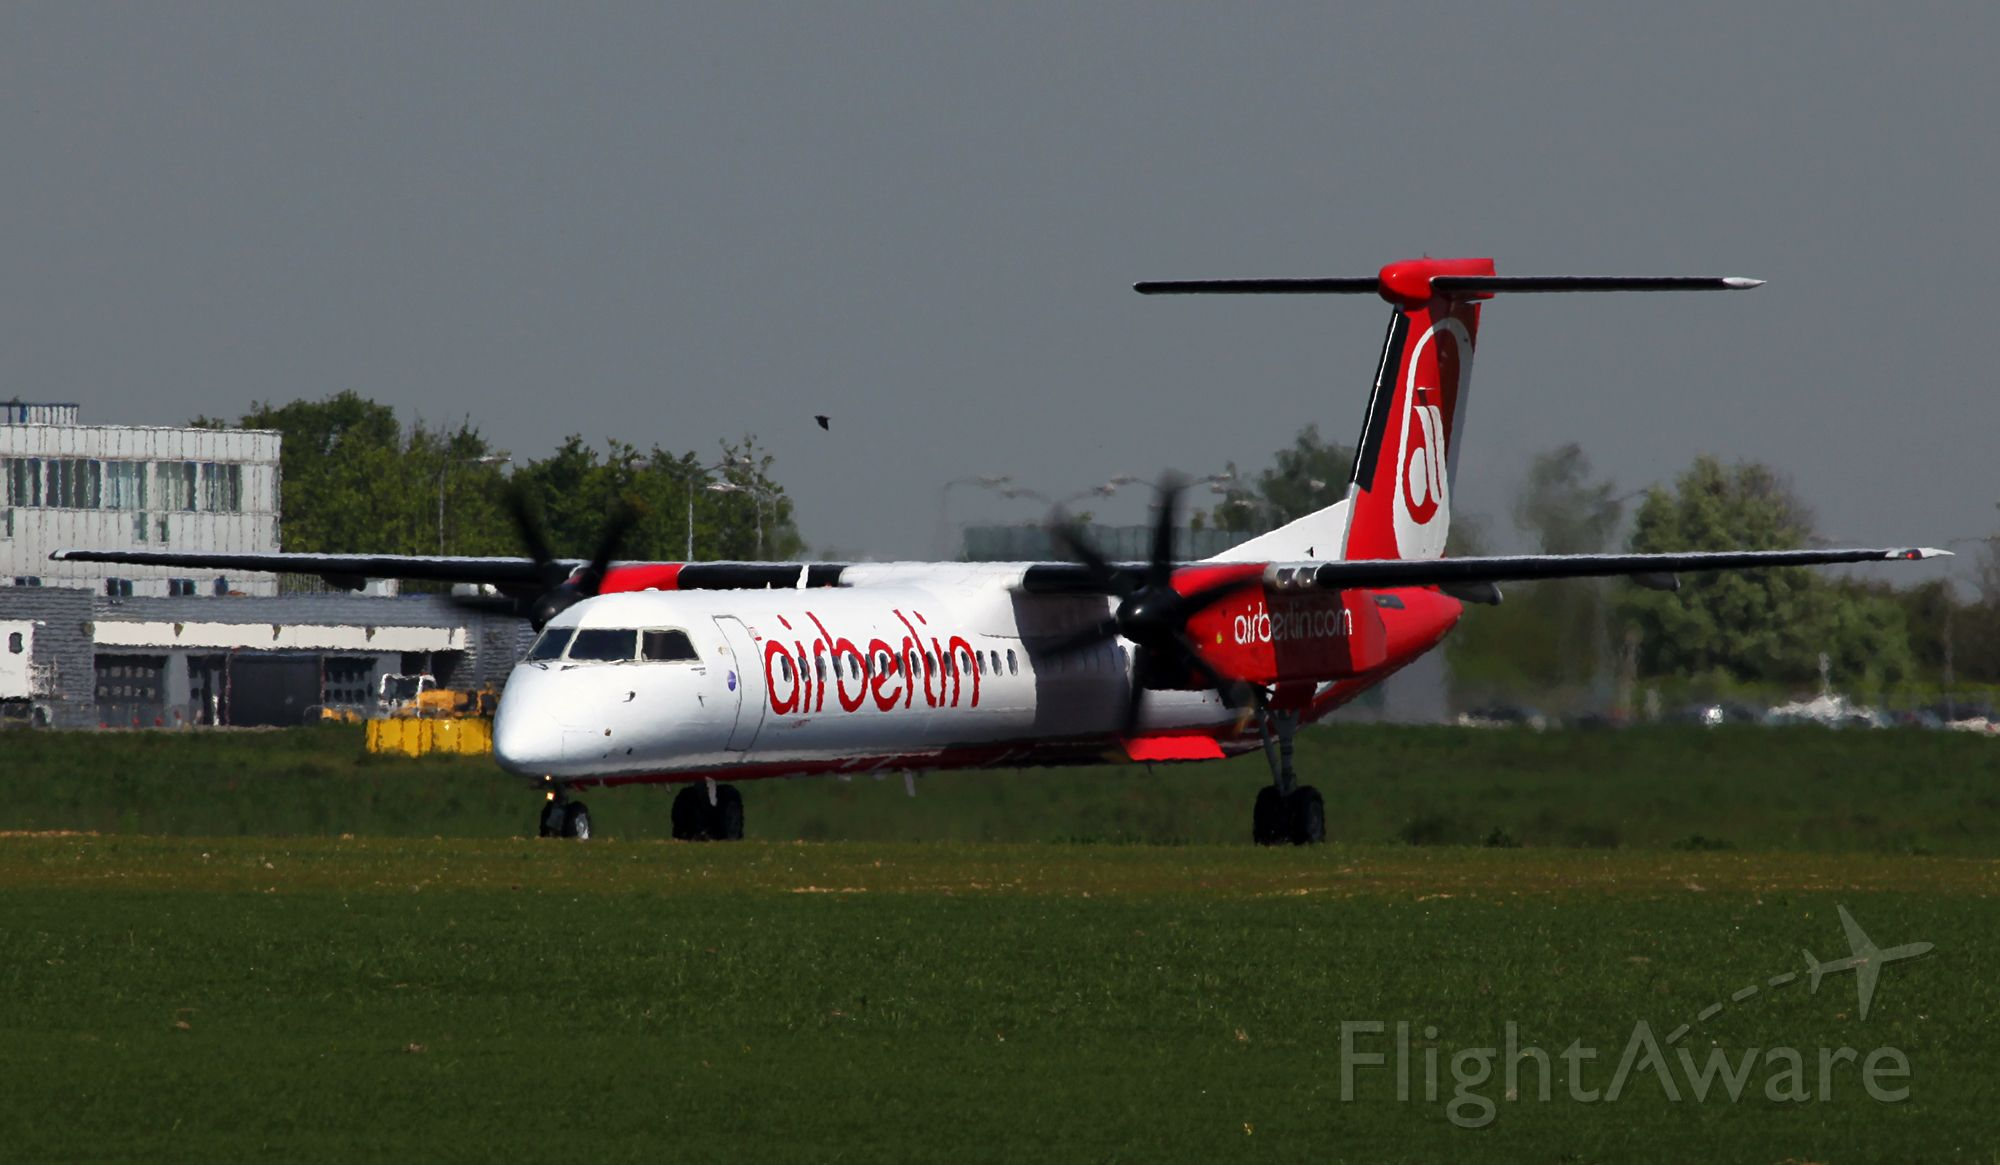 de Havilland Dash 8-400 (D-ABQI)